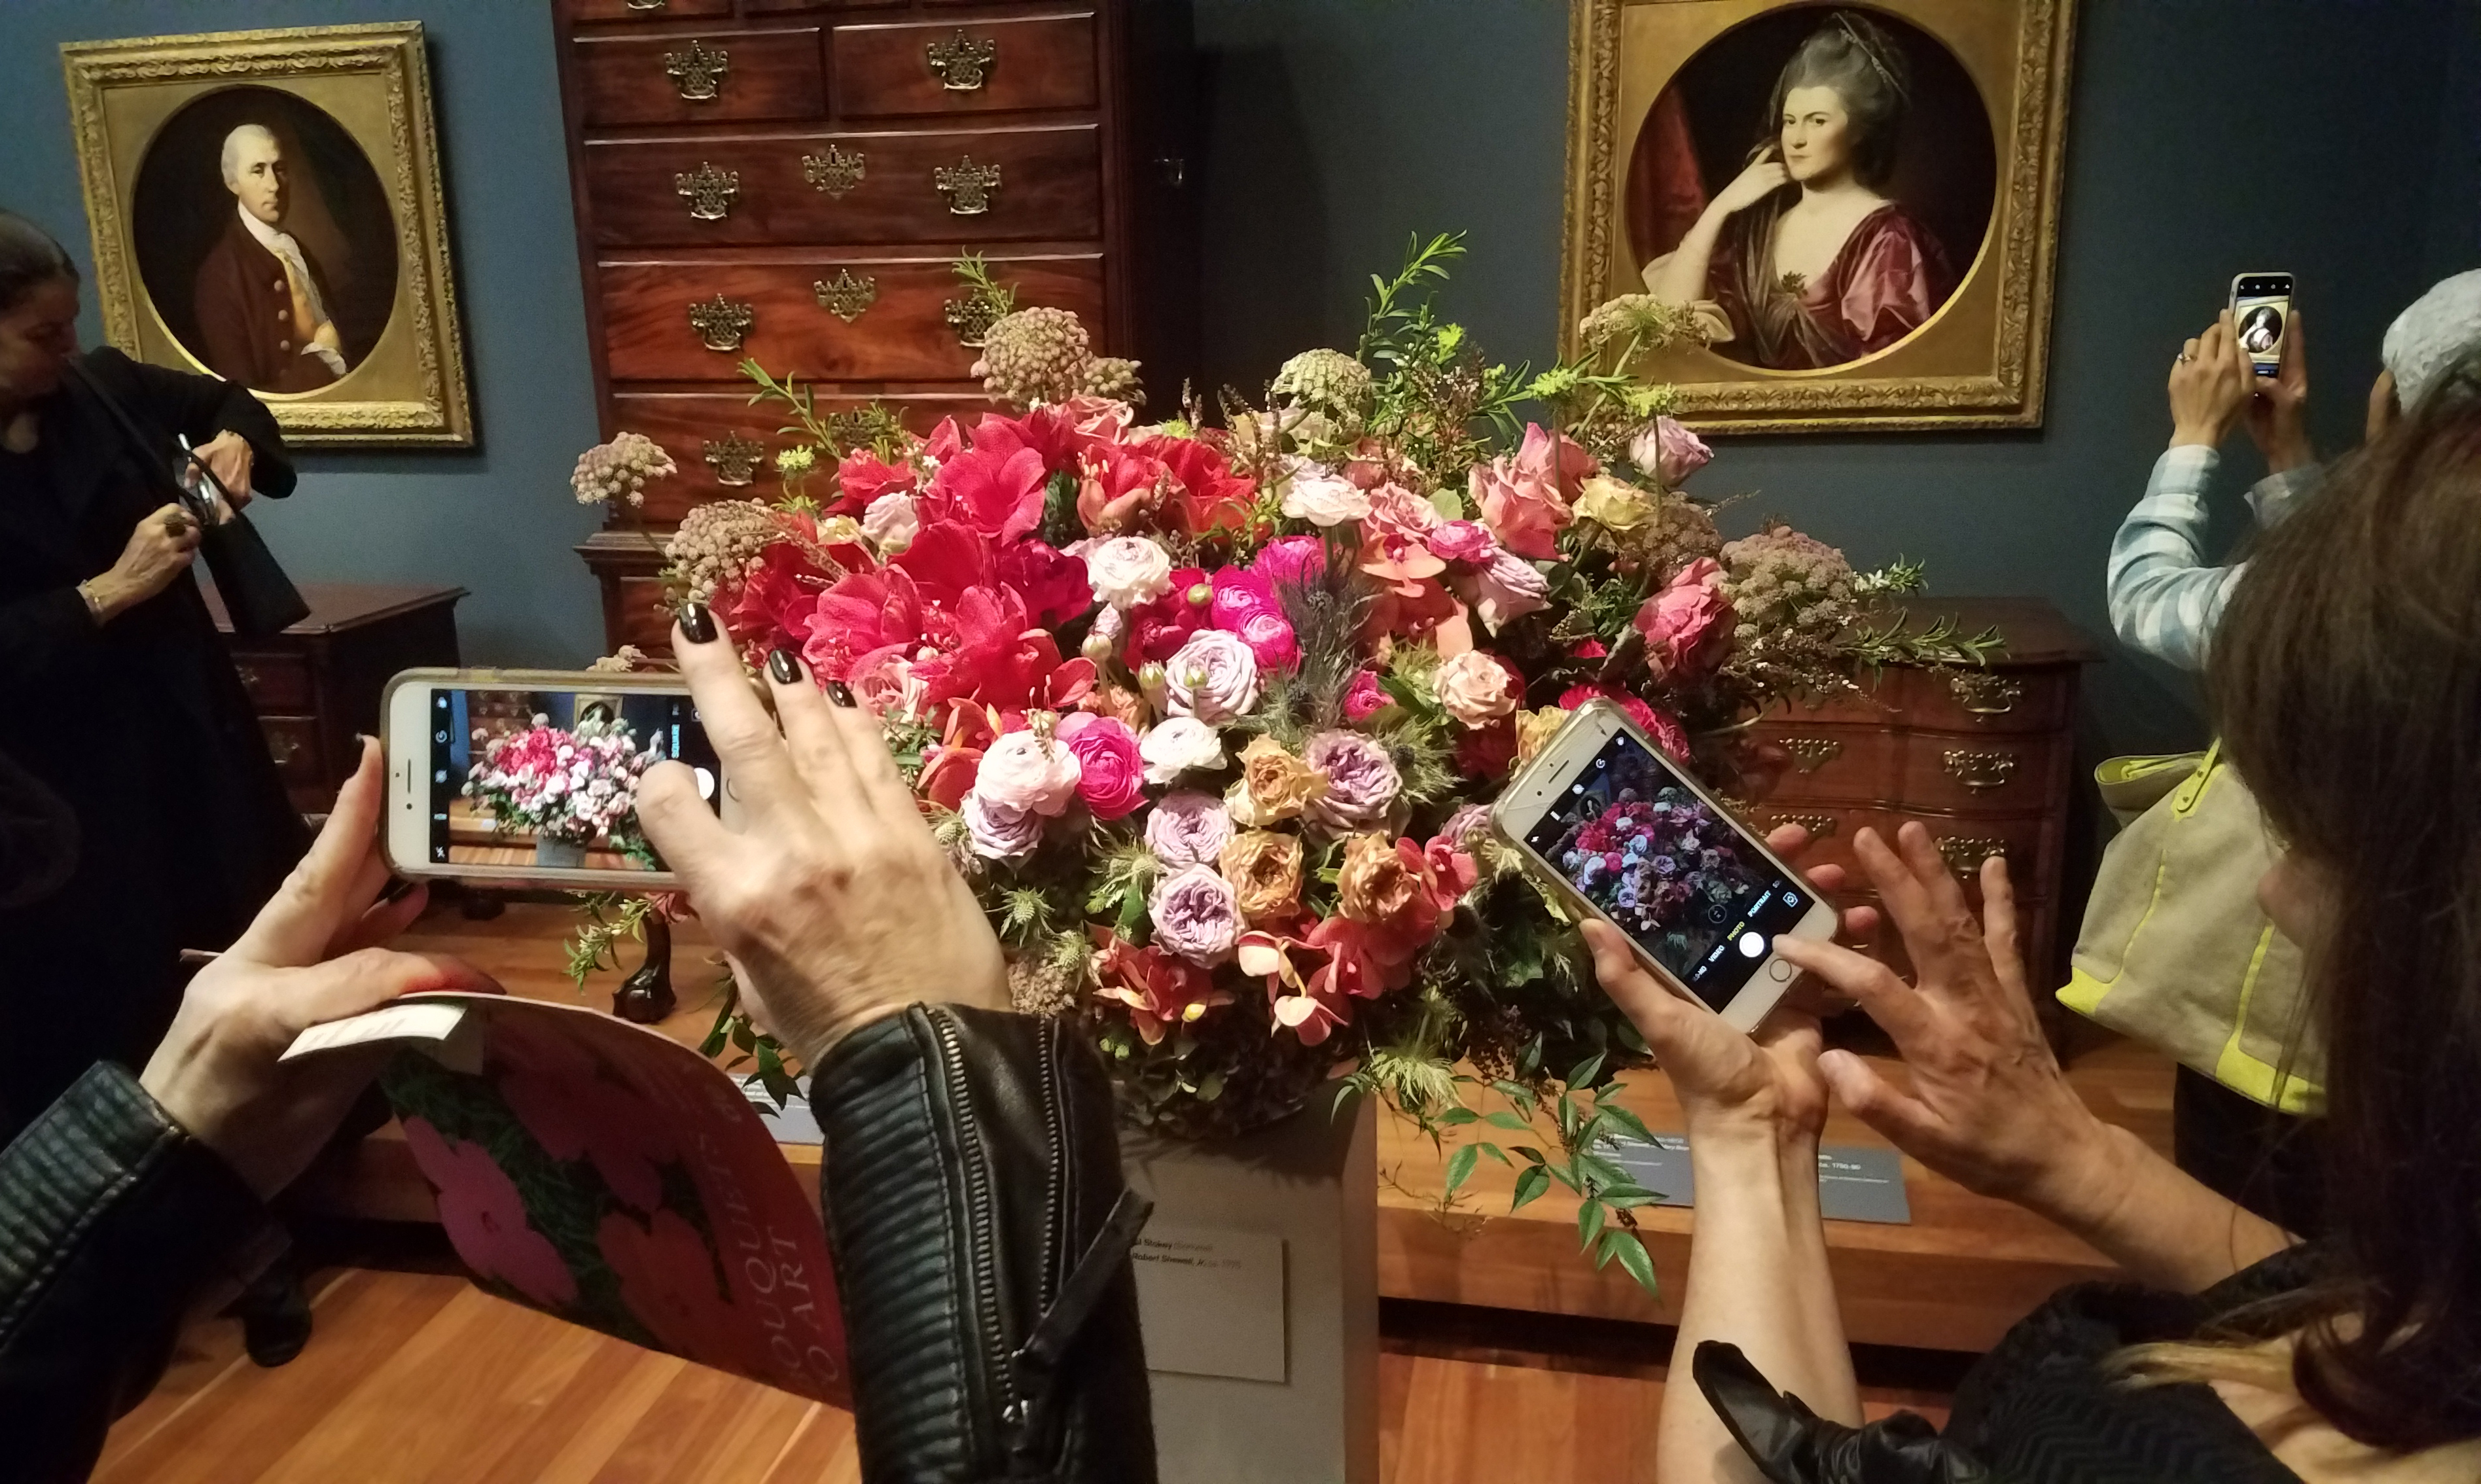 Museum goers take photos at the Bouquets to Art exhibit at the de Young Museum in San Francisco on Wednesday, March 14, 2018.